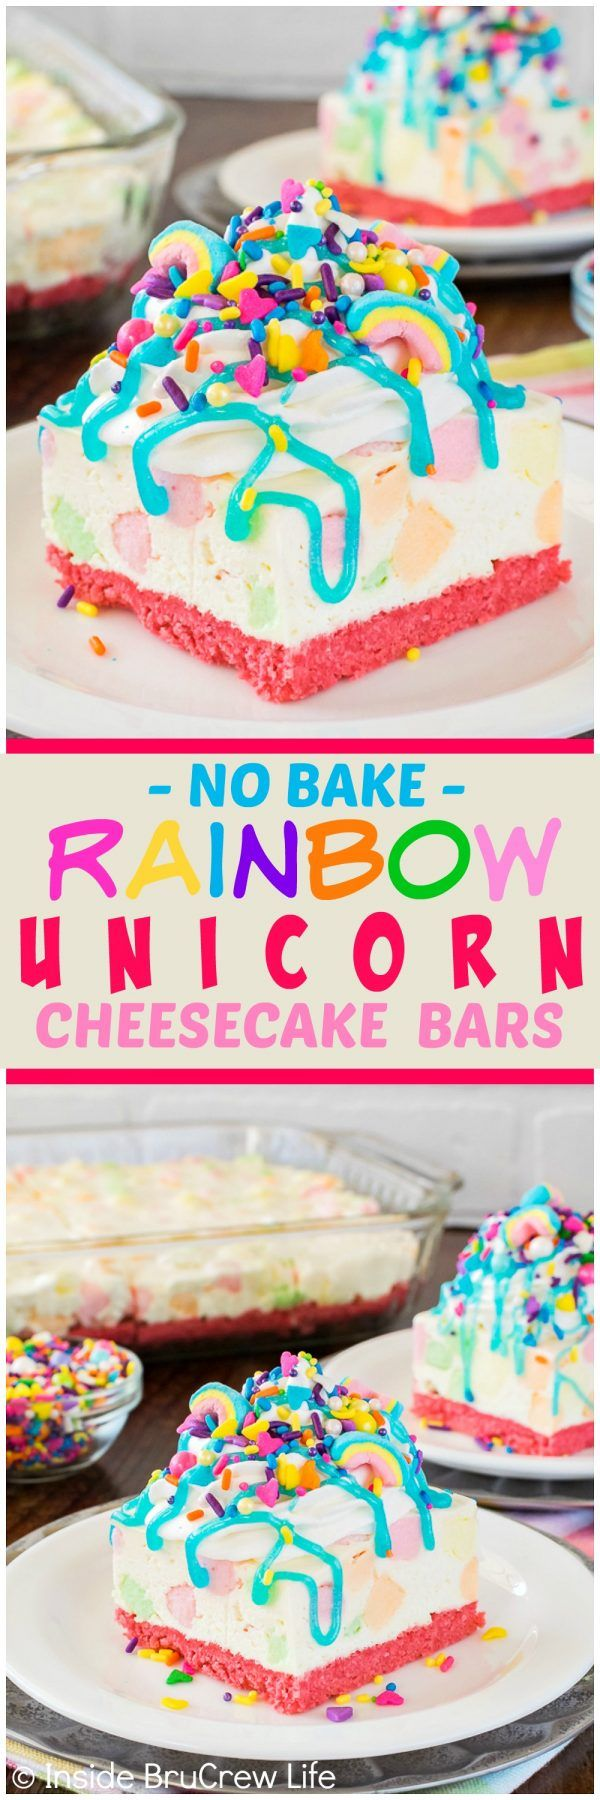 No Bake Rainbow Unicorn Cheesecake Bars - a pink cookie crust, lots of sprinkles, and colorful marshmallows makes this easy dessert recipe perfect for spring parties!